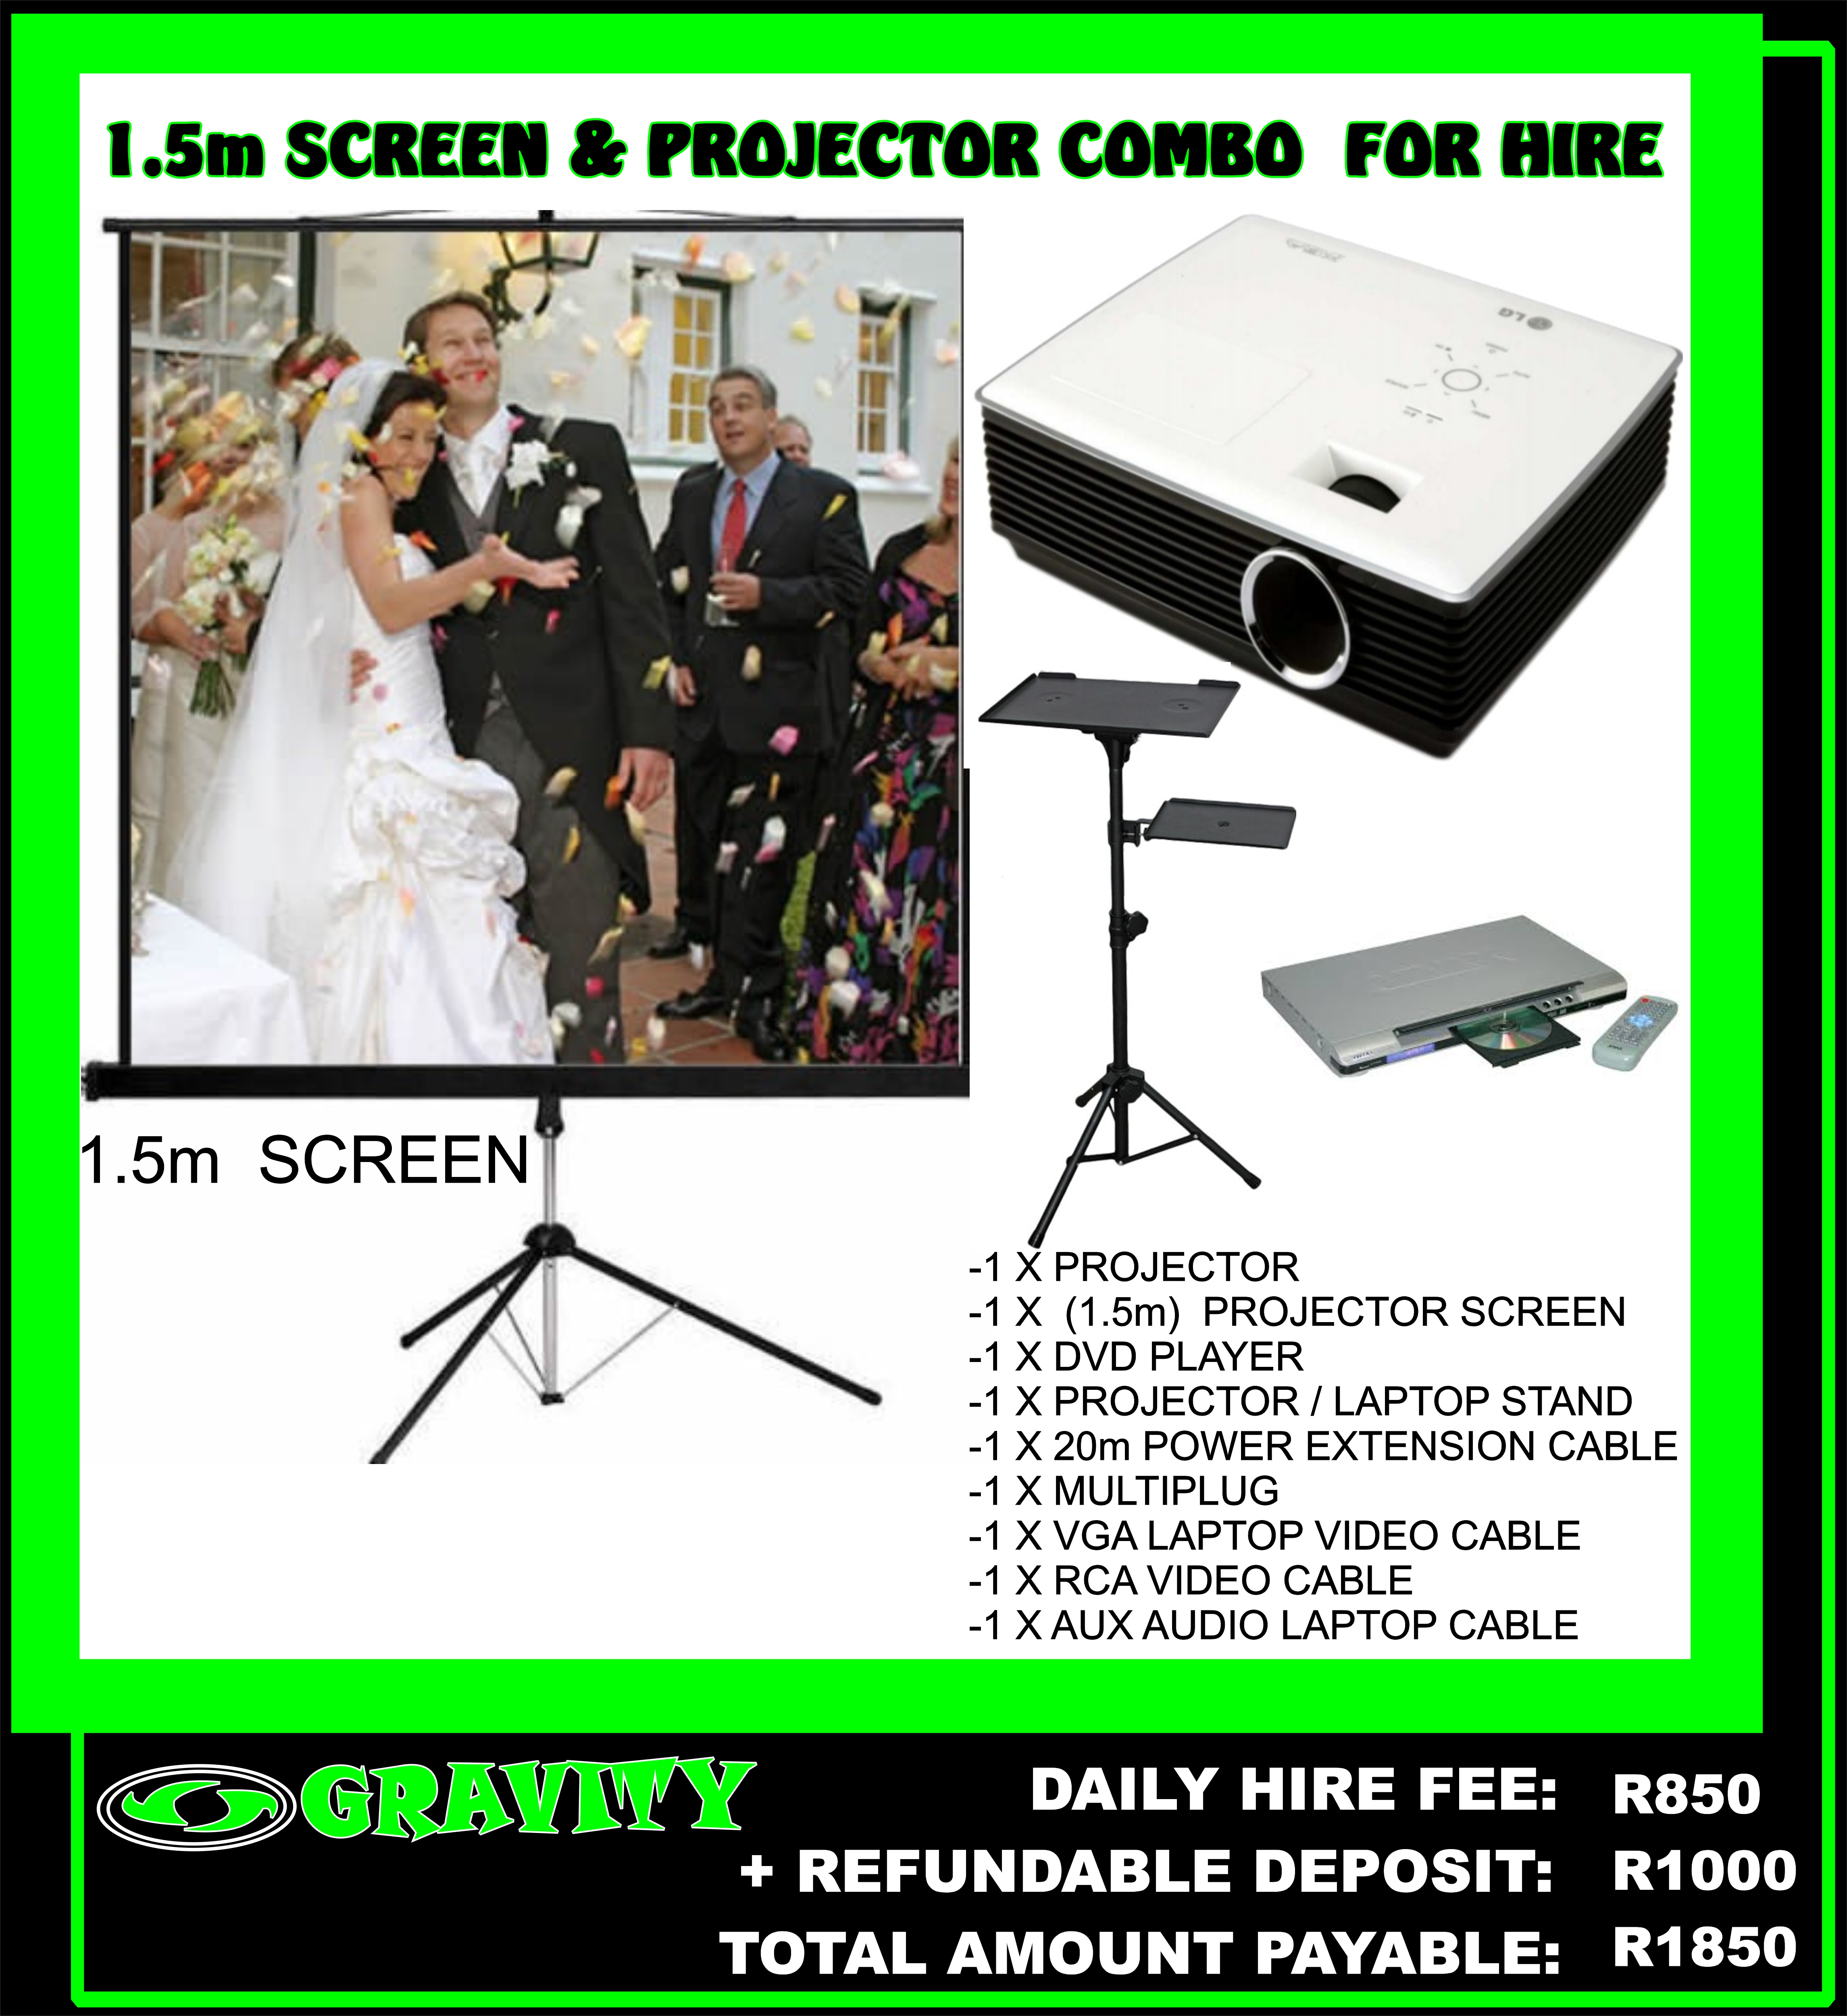 PROJECTOR AND 1.5m SCREEN FOR HIRE IN DURBAN IDEAL FOR A SLIDE SHOW FOR A WEDDING BIRTHDAY DEATH CEREMONY CONFERENCE SHOW EVENTS PROJECTS AND SCREEN DAY HIRE ONLY AT GRAVITY SOUND AND LIGHTING WAREHOUSE DURBAN 0315072736 PROJECTOR LAPTOP POWERPOINT PRESENTATIONS ONTO A BIG SCREEN NOW AVAILABLE AT GRAVITY DJ STORE ON A DAILY HIRE FEE 0315072463